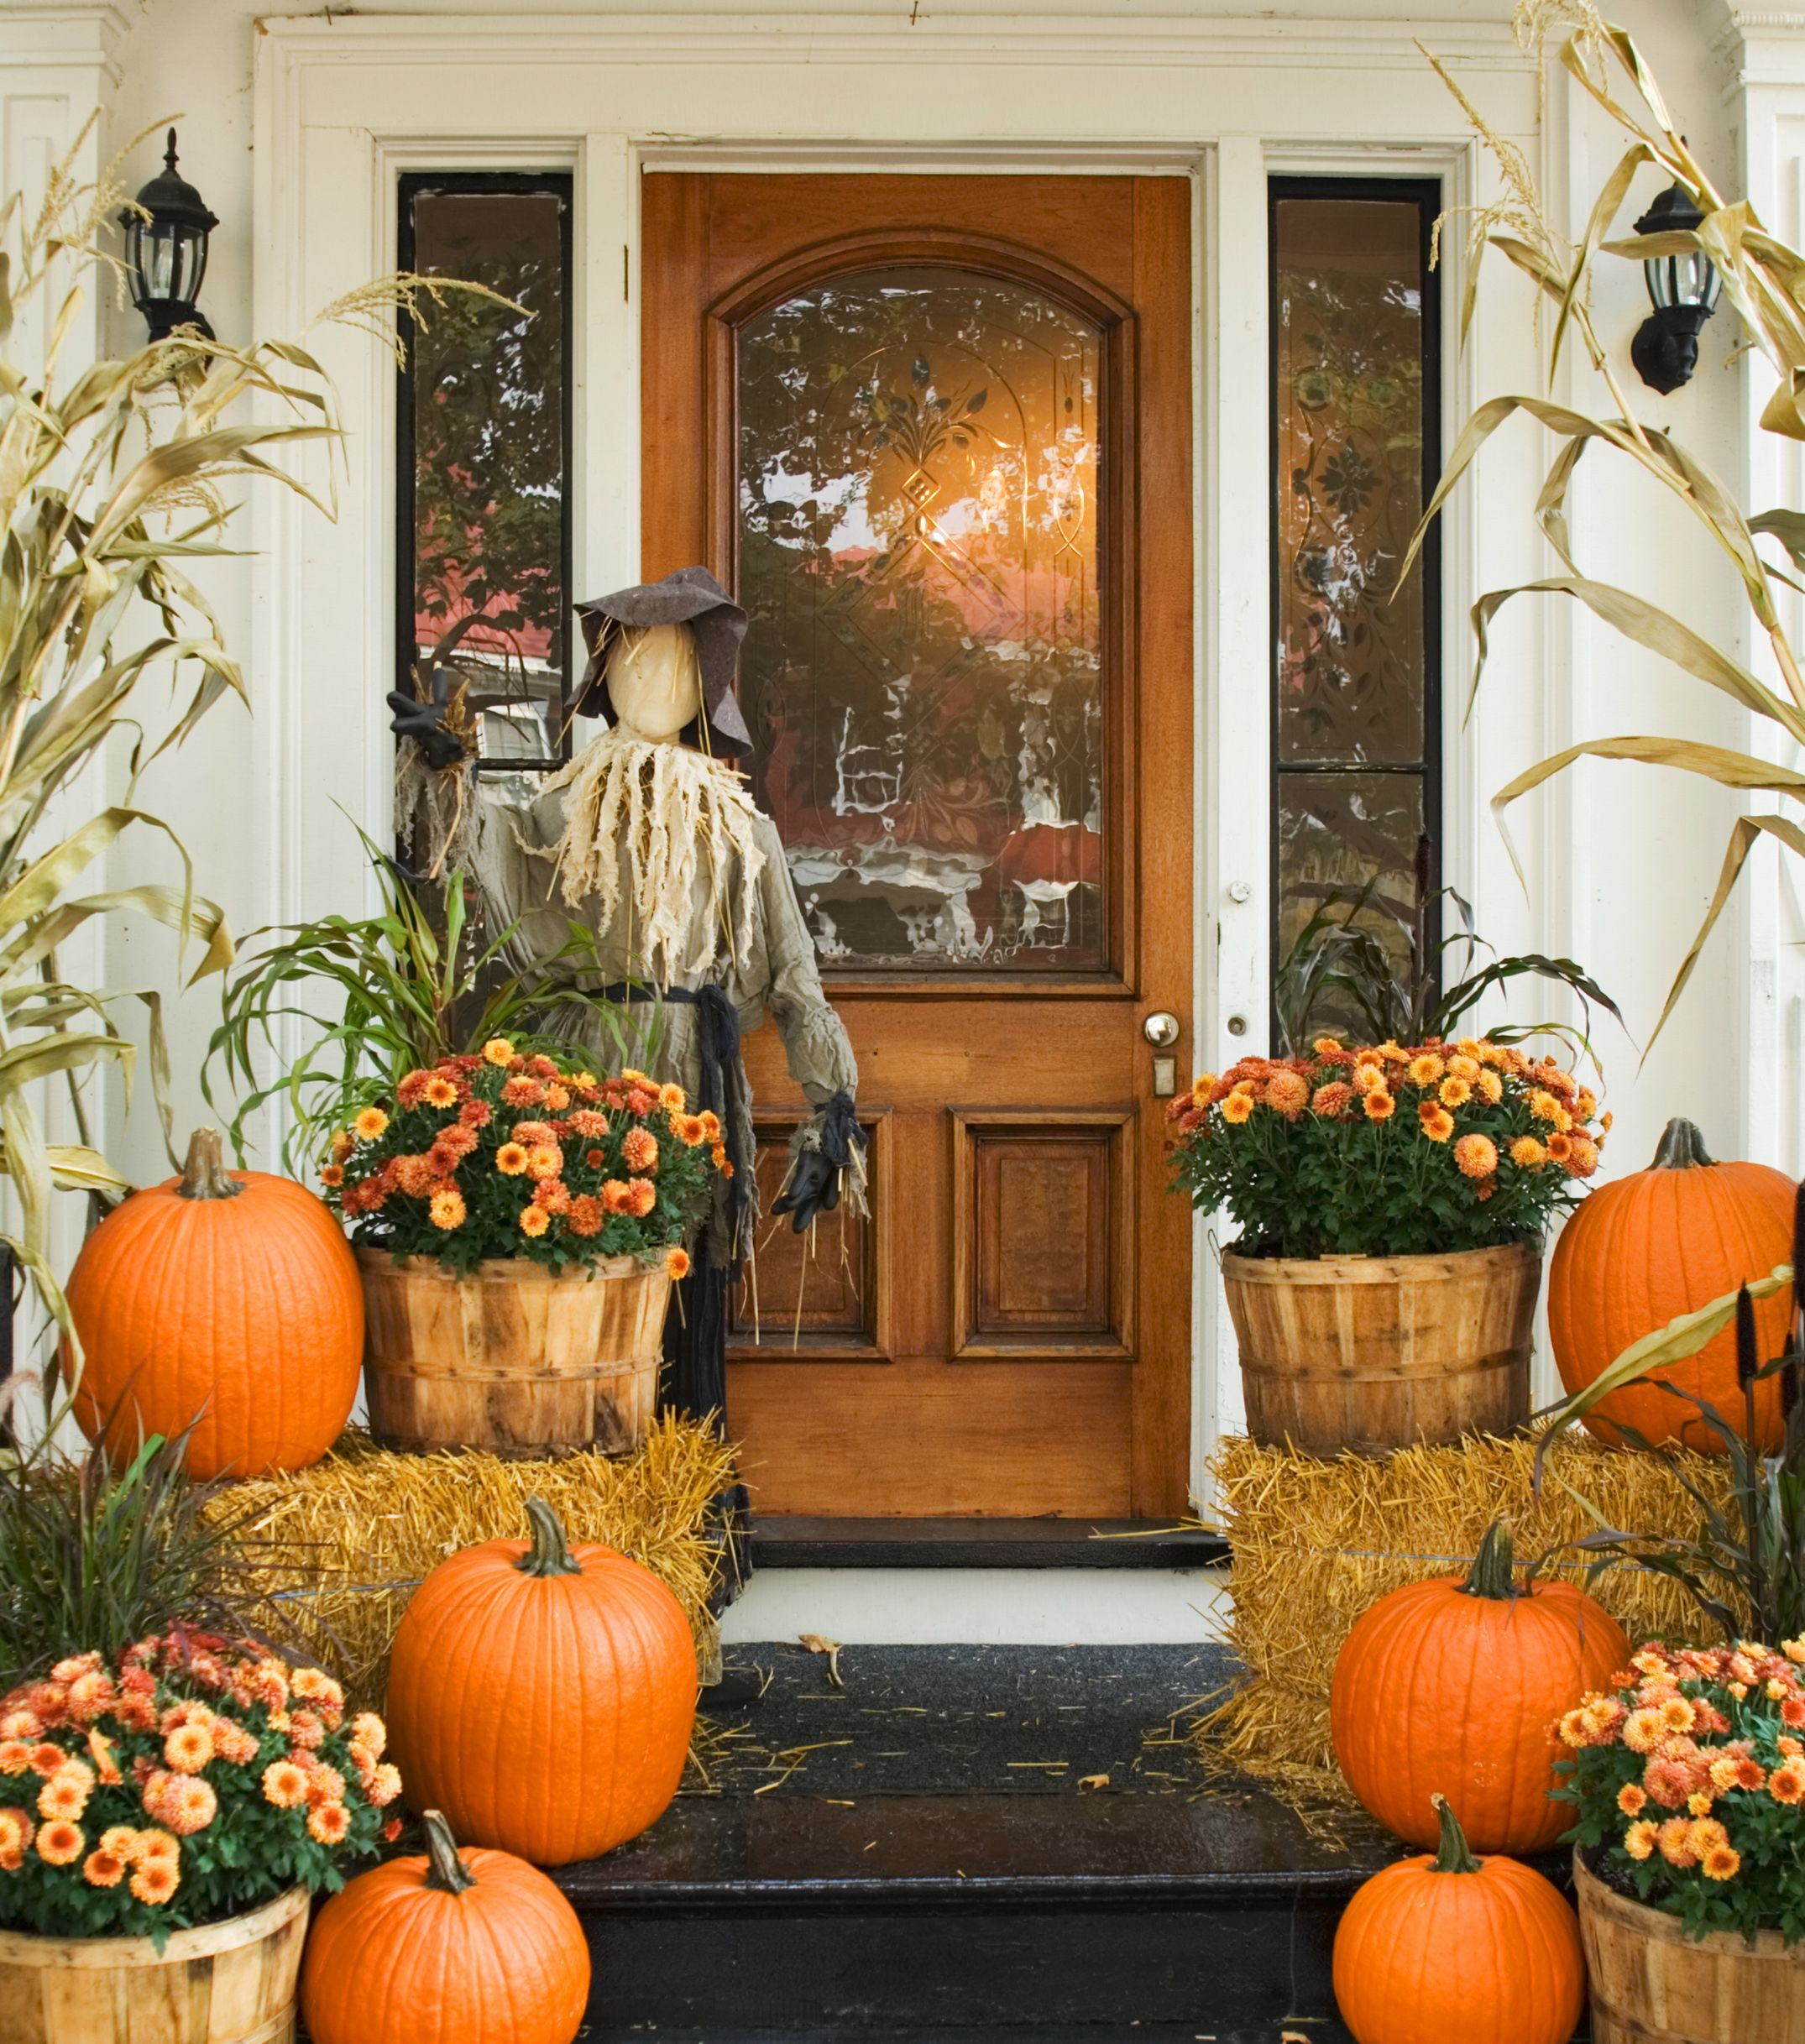 23 Best Fall Home Decorating Ideas 2019 , Autumn Decorations